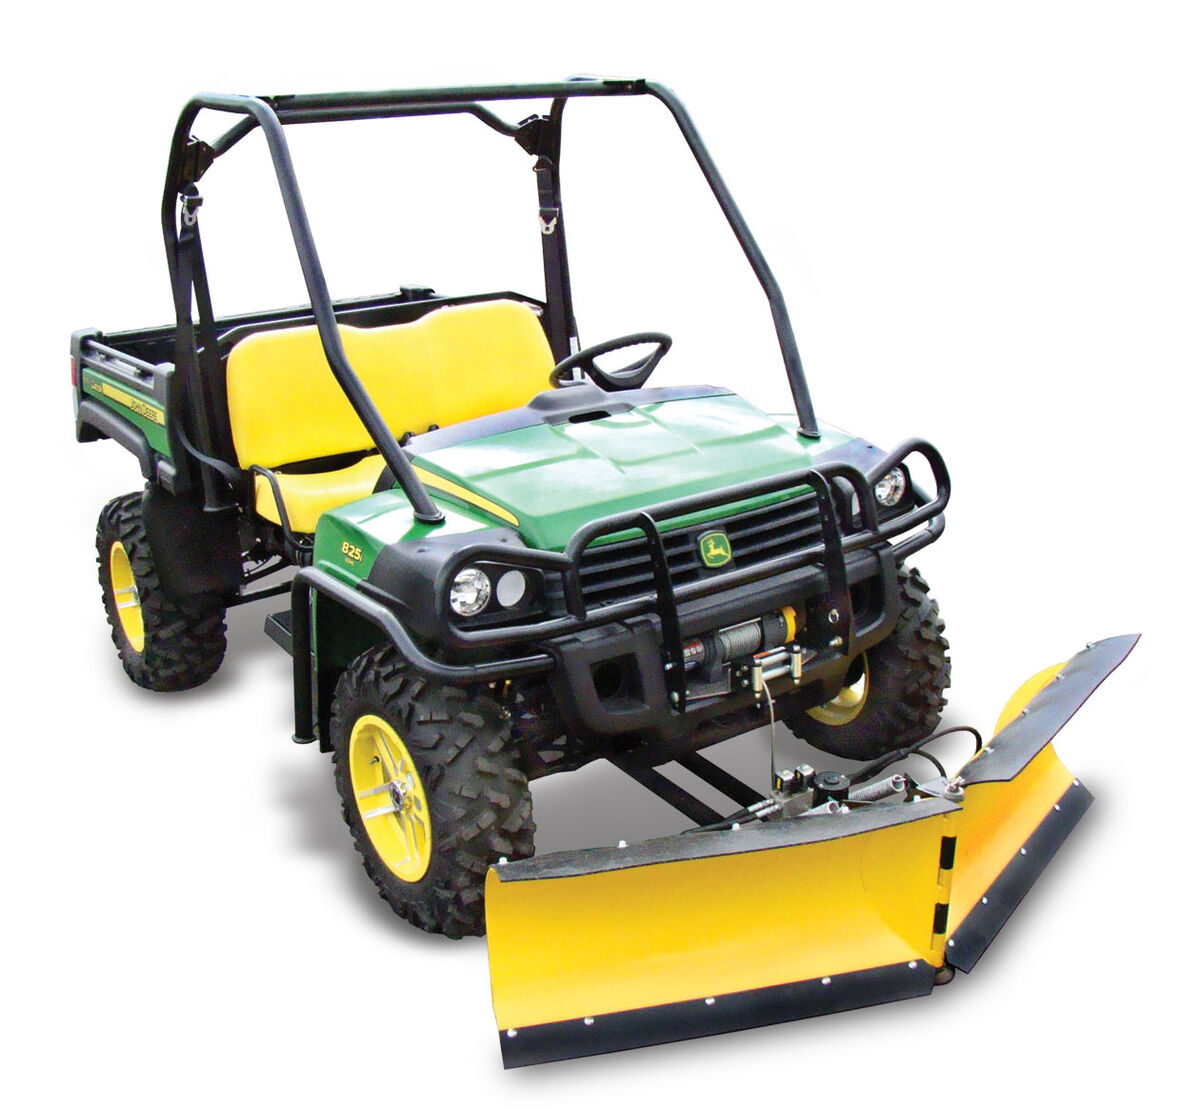 john deere gator 825i owners manual